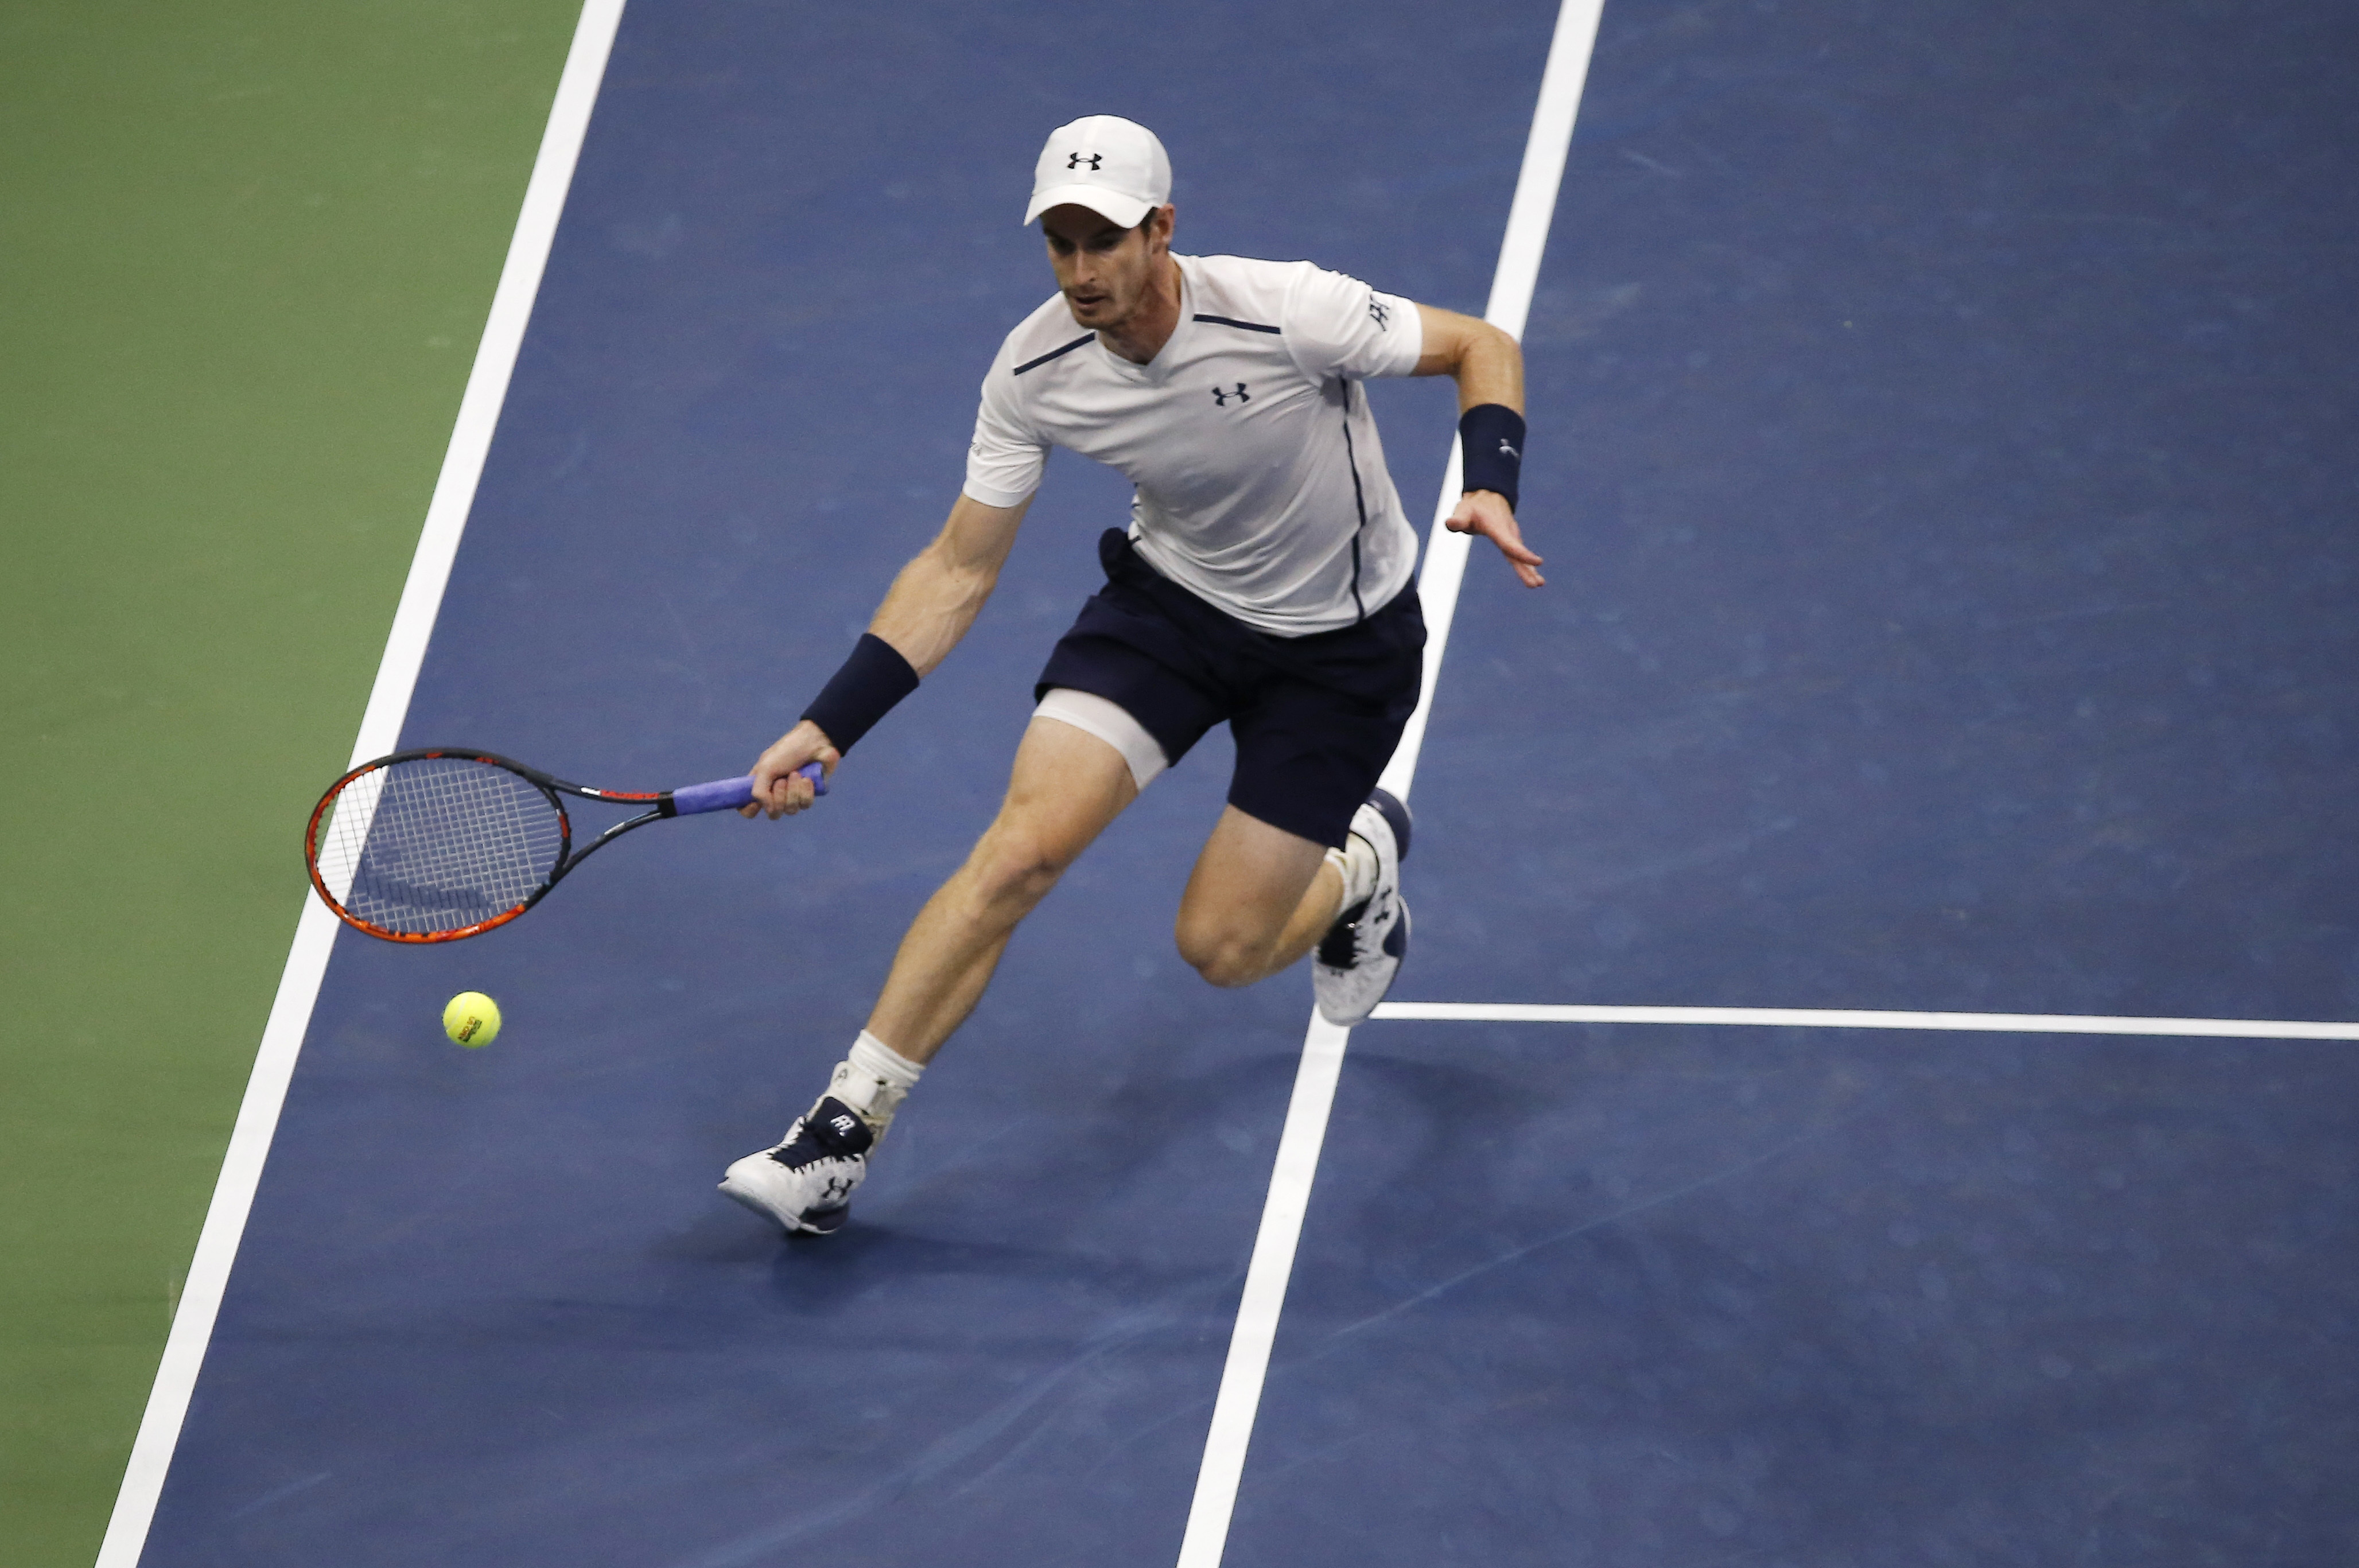 Andy Murray, of the United Kingdom, returns a shot to Marcel Granollers, of Spain, during the second round of the U.S. Open tennis tournament, Thursday, Sept. 1, 2016, in New York. (AP Photo/Andres Kudacki)